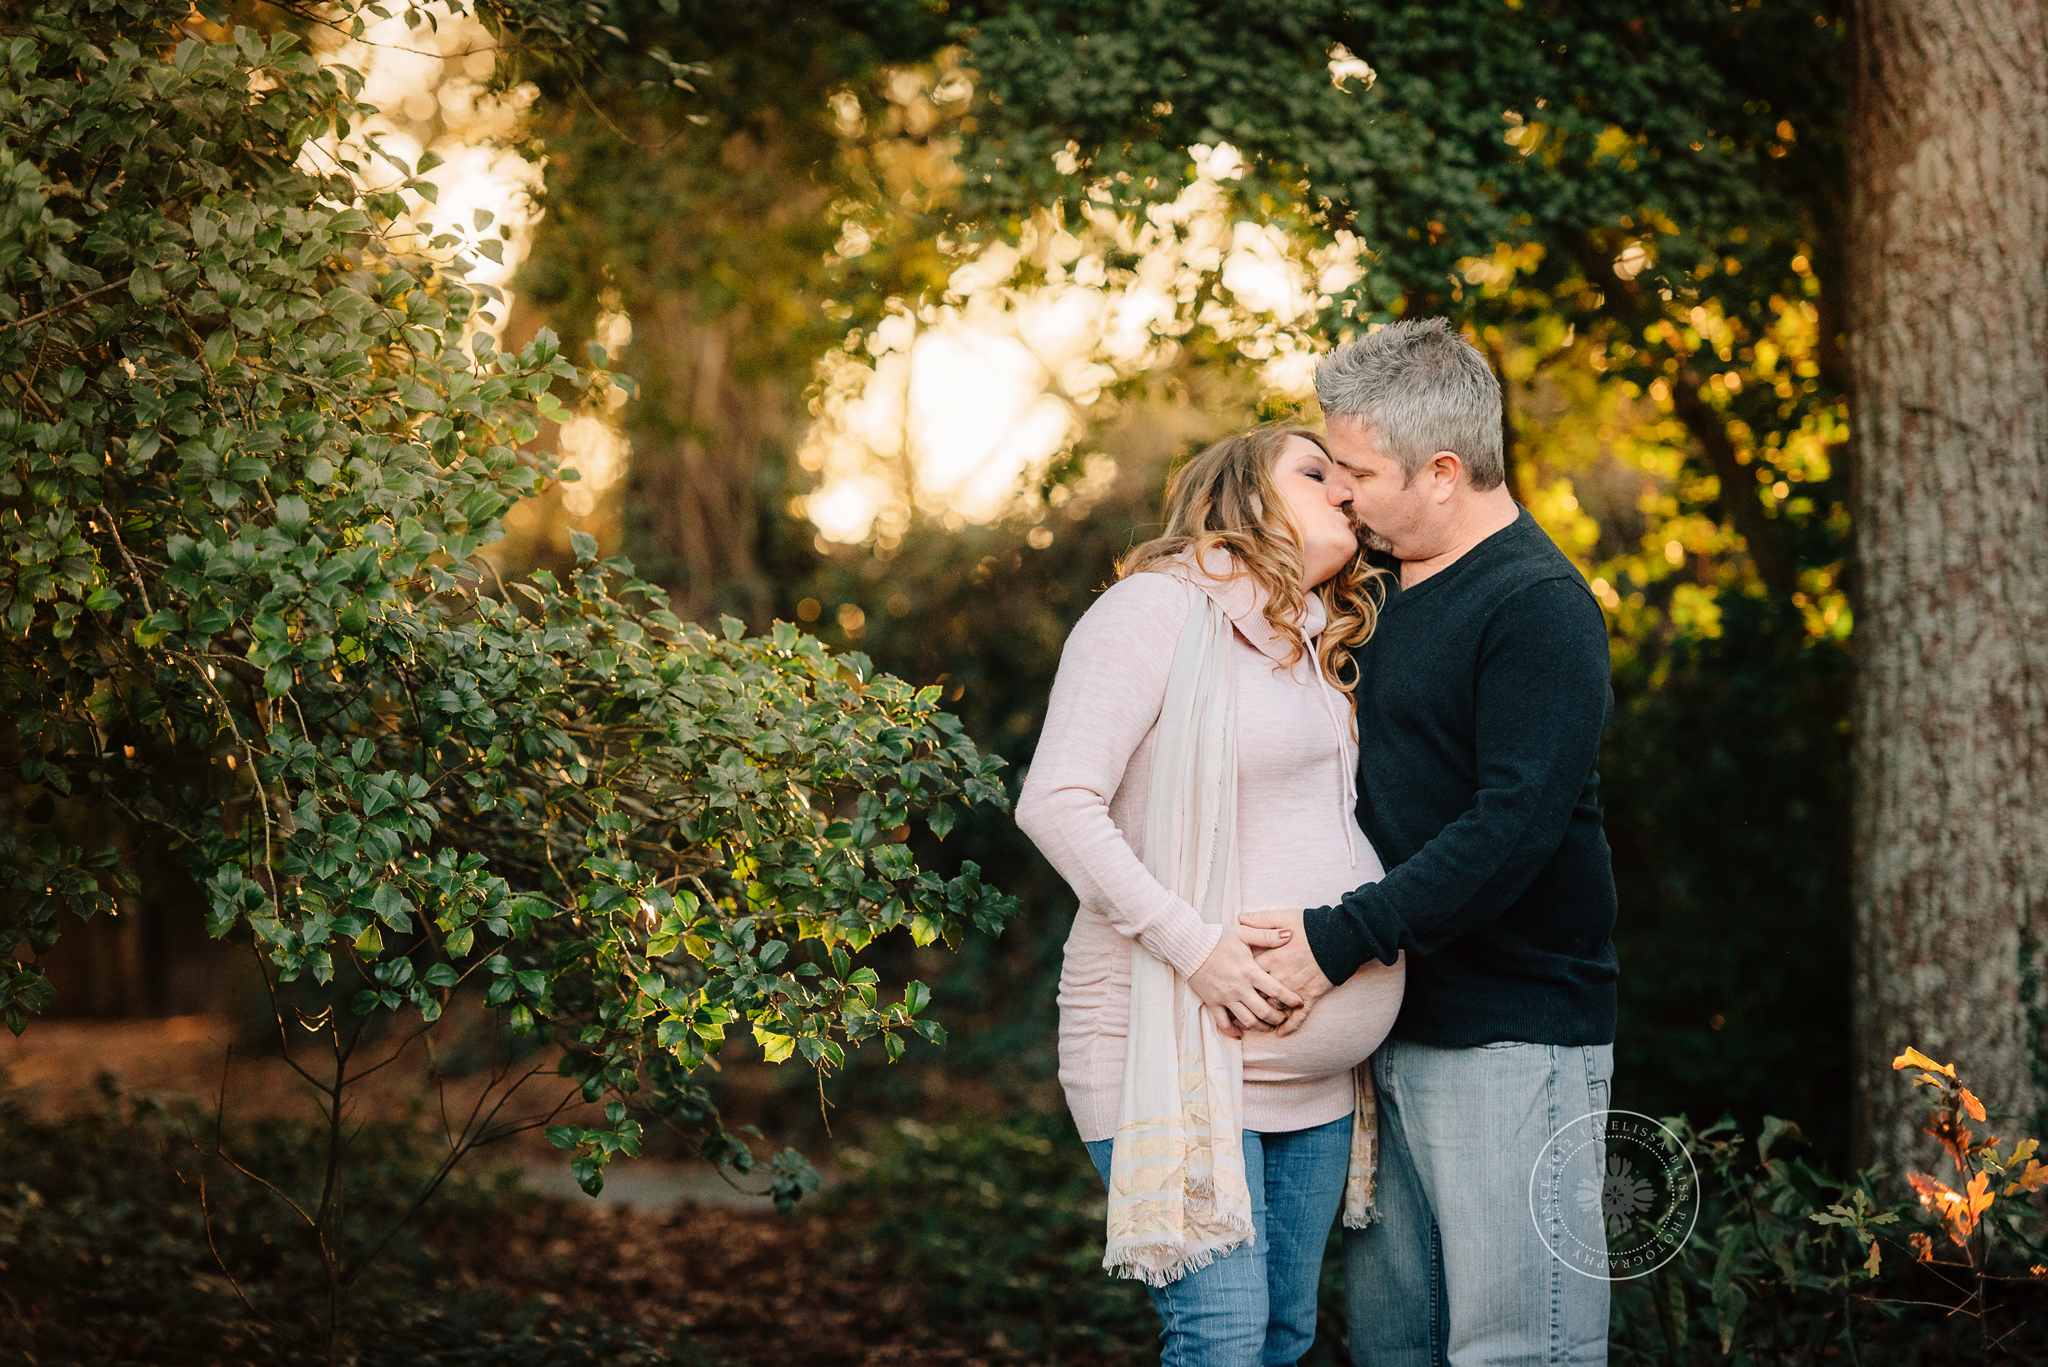 norfolk-maternity-session-pregnant-couple-in-golden-light-at-hermitage-museum-norfolk-va